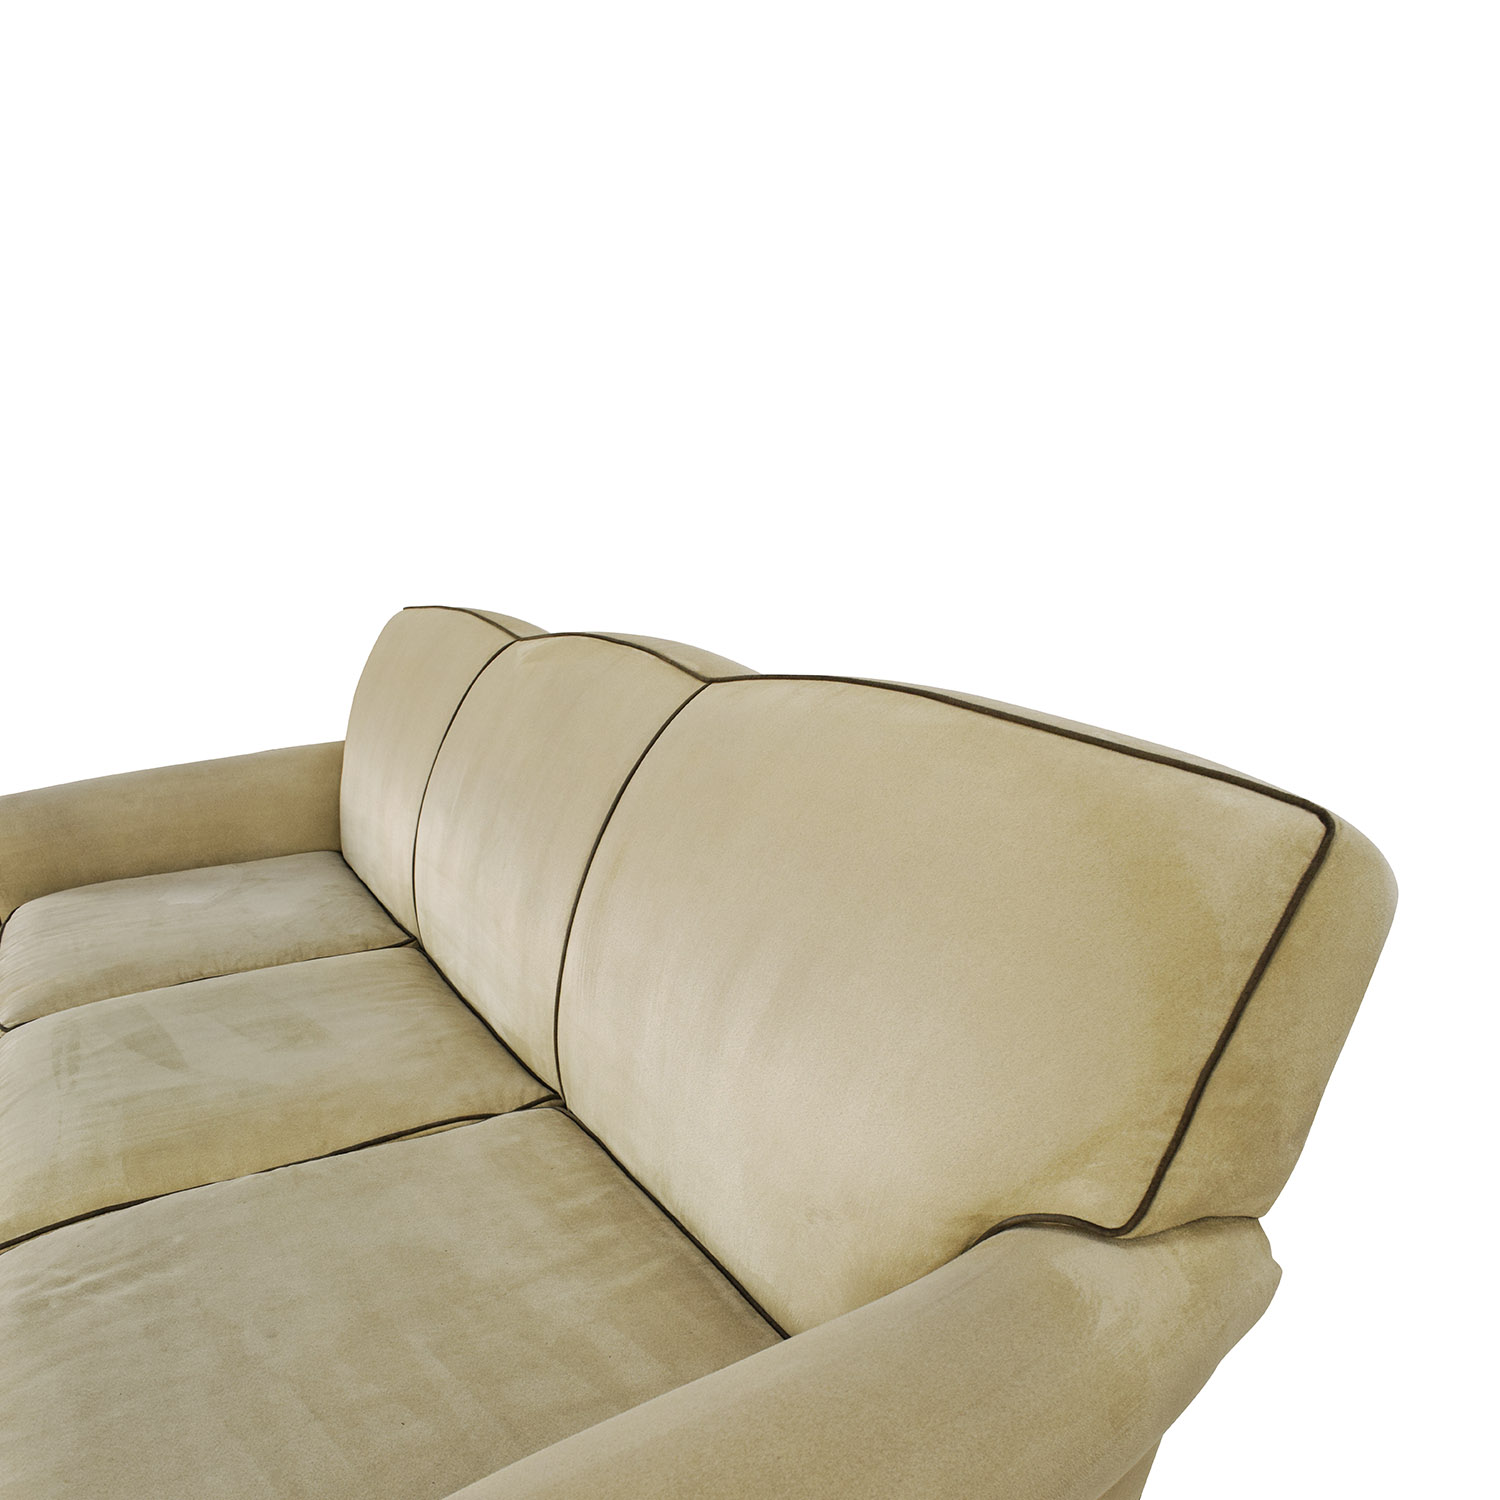 UHURU FURNITURE COLLECTIBLES SOLD Microsuede Sofa With